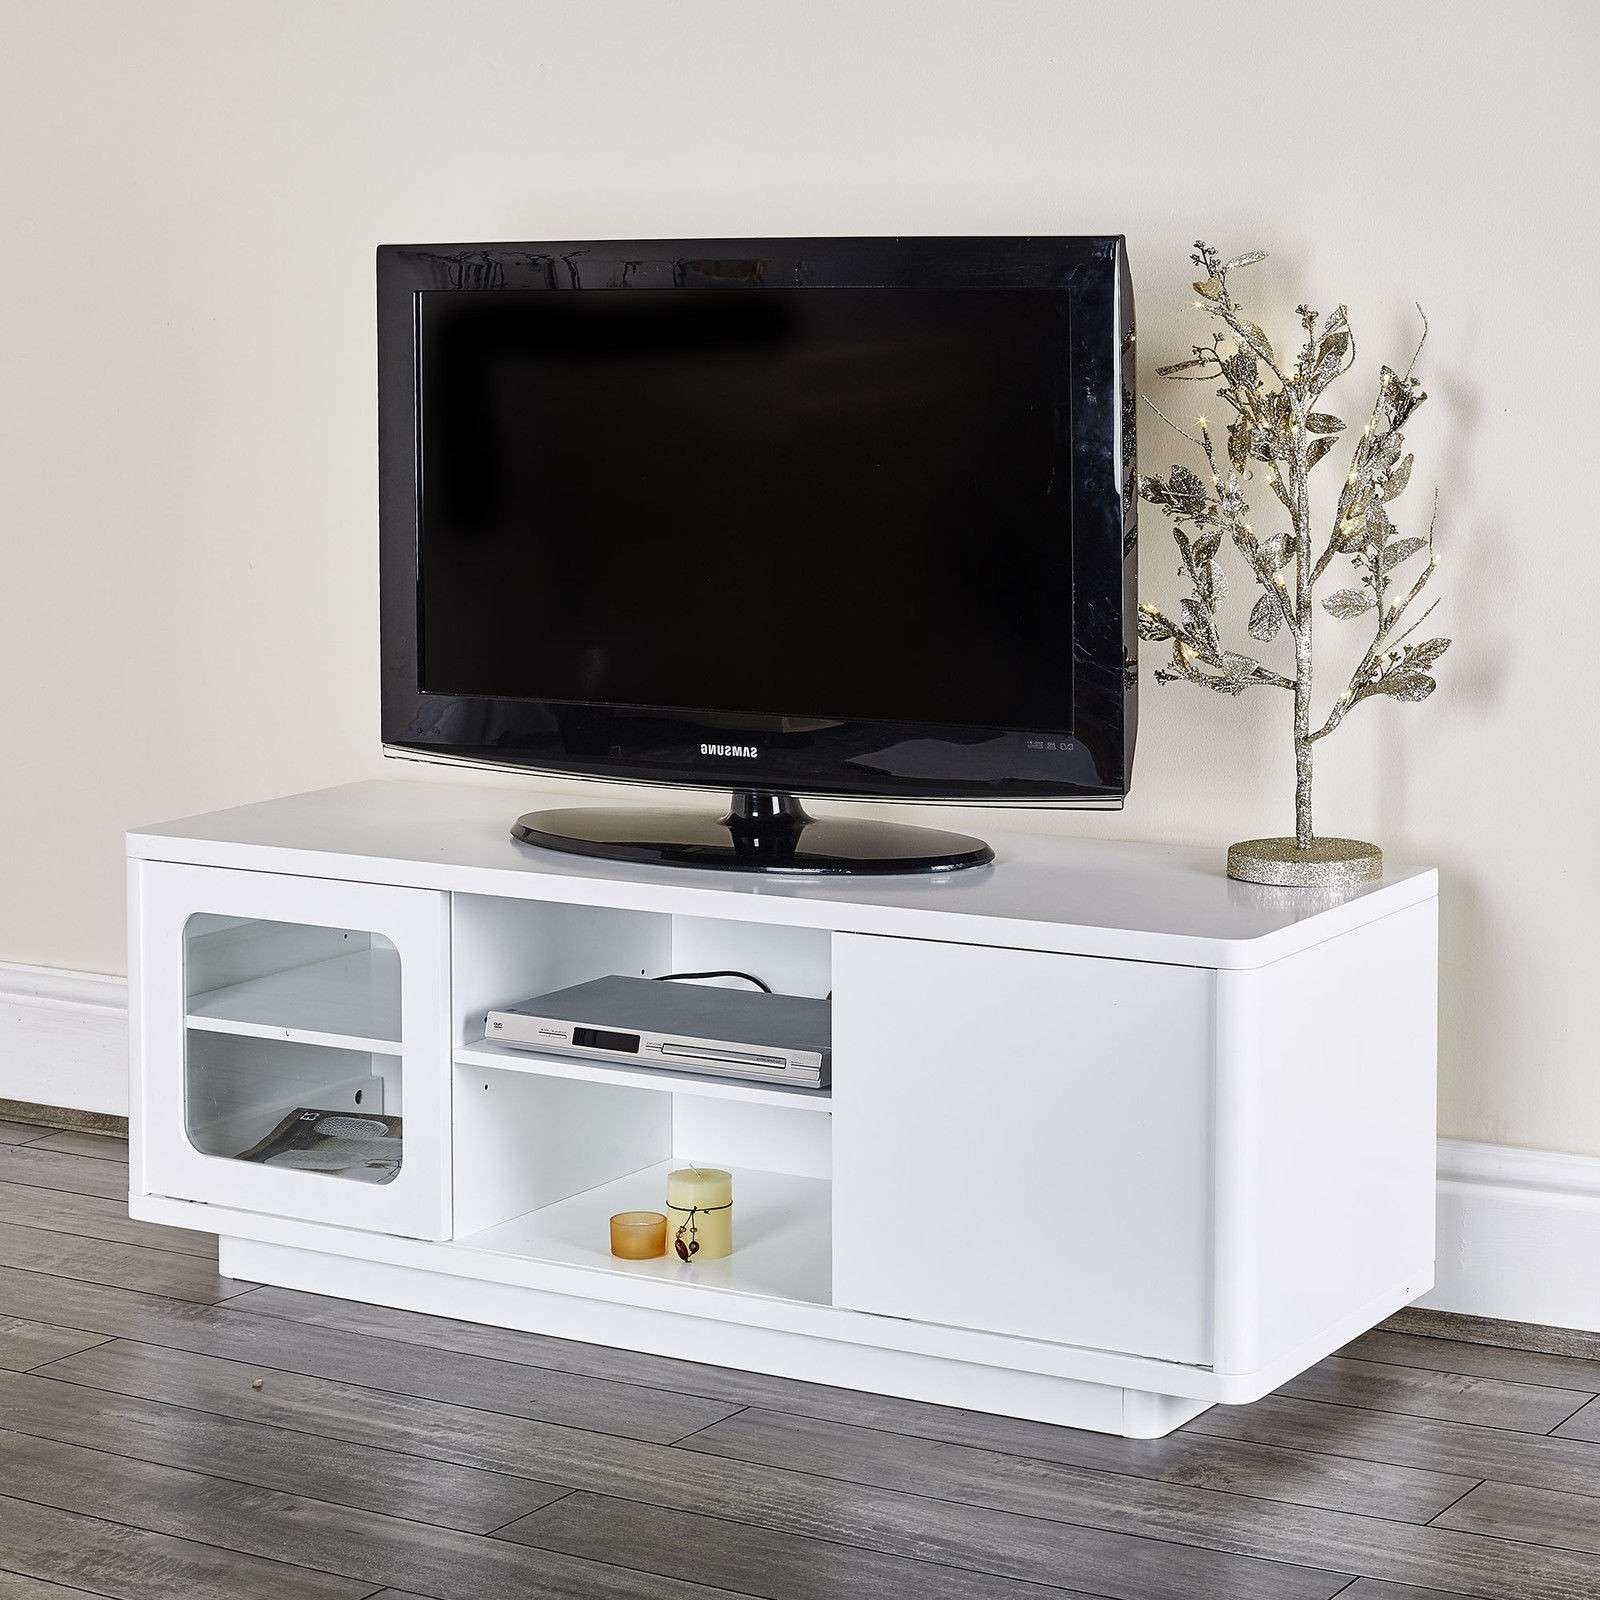 Modern White Tv Entertainment Unit Abreo Home Furniture Intended For Modern White Tv Stands (View 10 of 15)